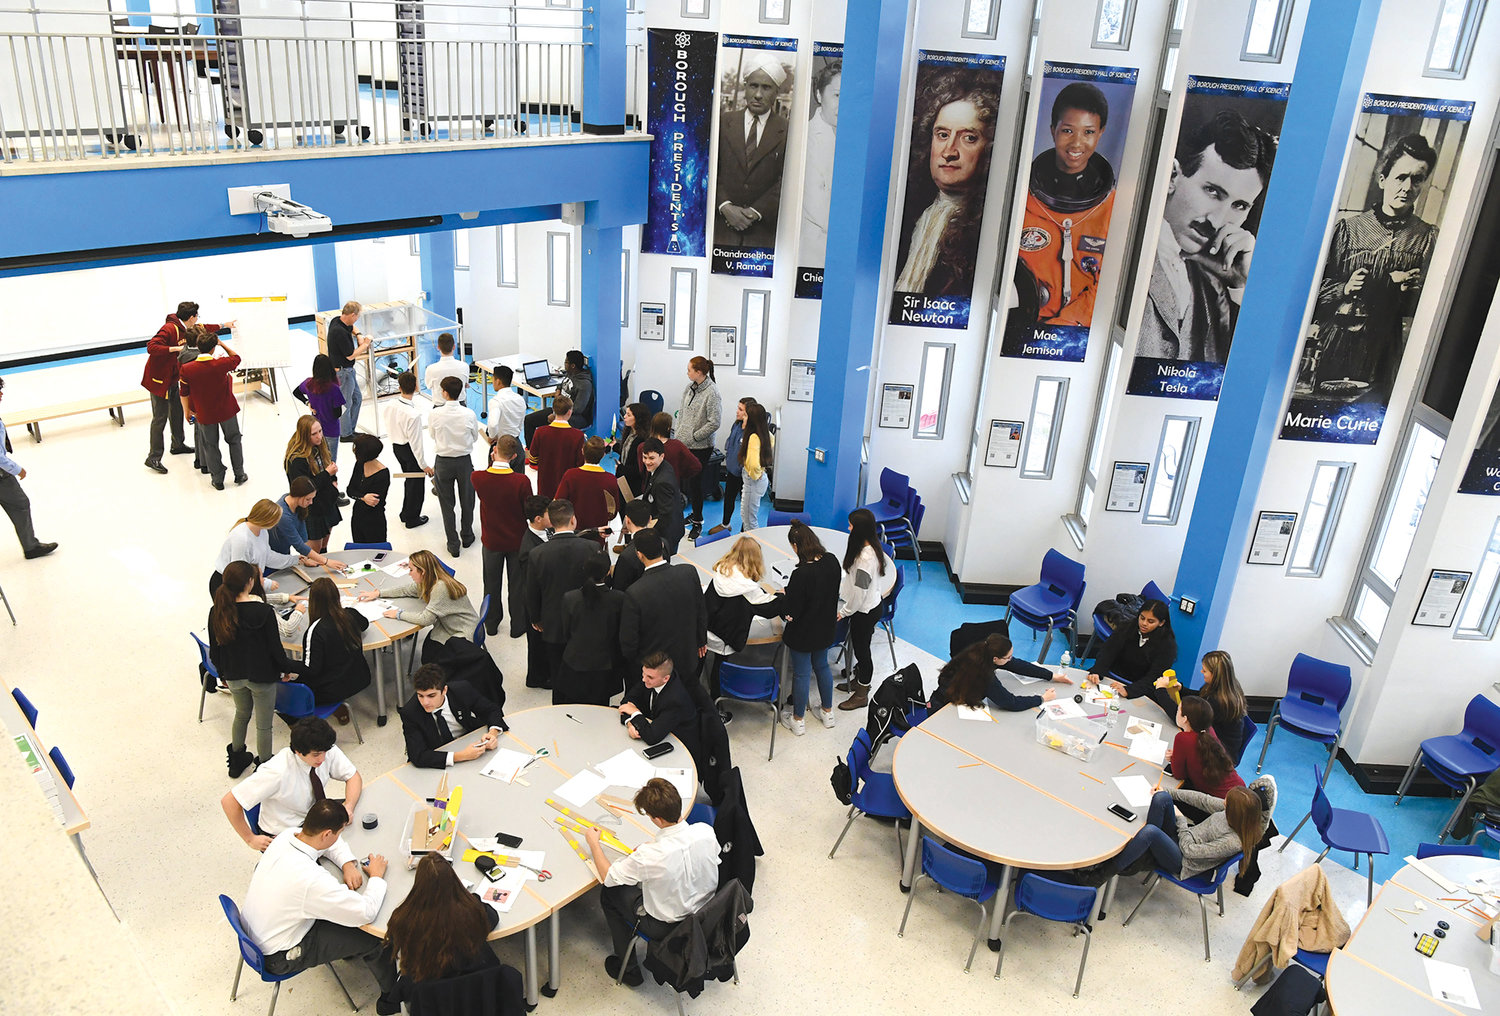 More than 75 Catholic high school students from Staten Island participated in their first engineering conference at Borough Presidents Hall of Science at the Petridies Education Complex Nov. 22. Engineering Tomorrow introduces high school students to the engineering field with projects that illustrate practical applications for the math and science they study.